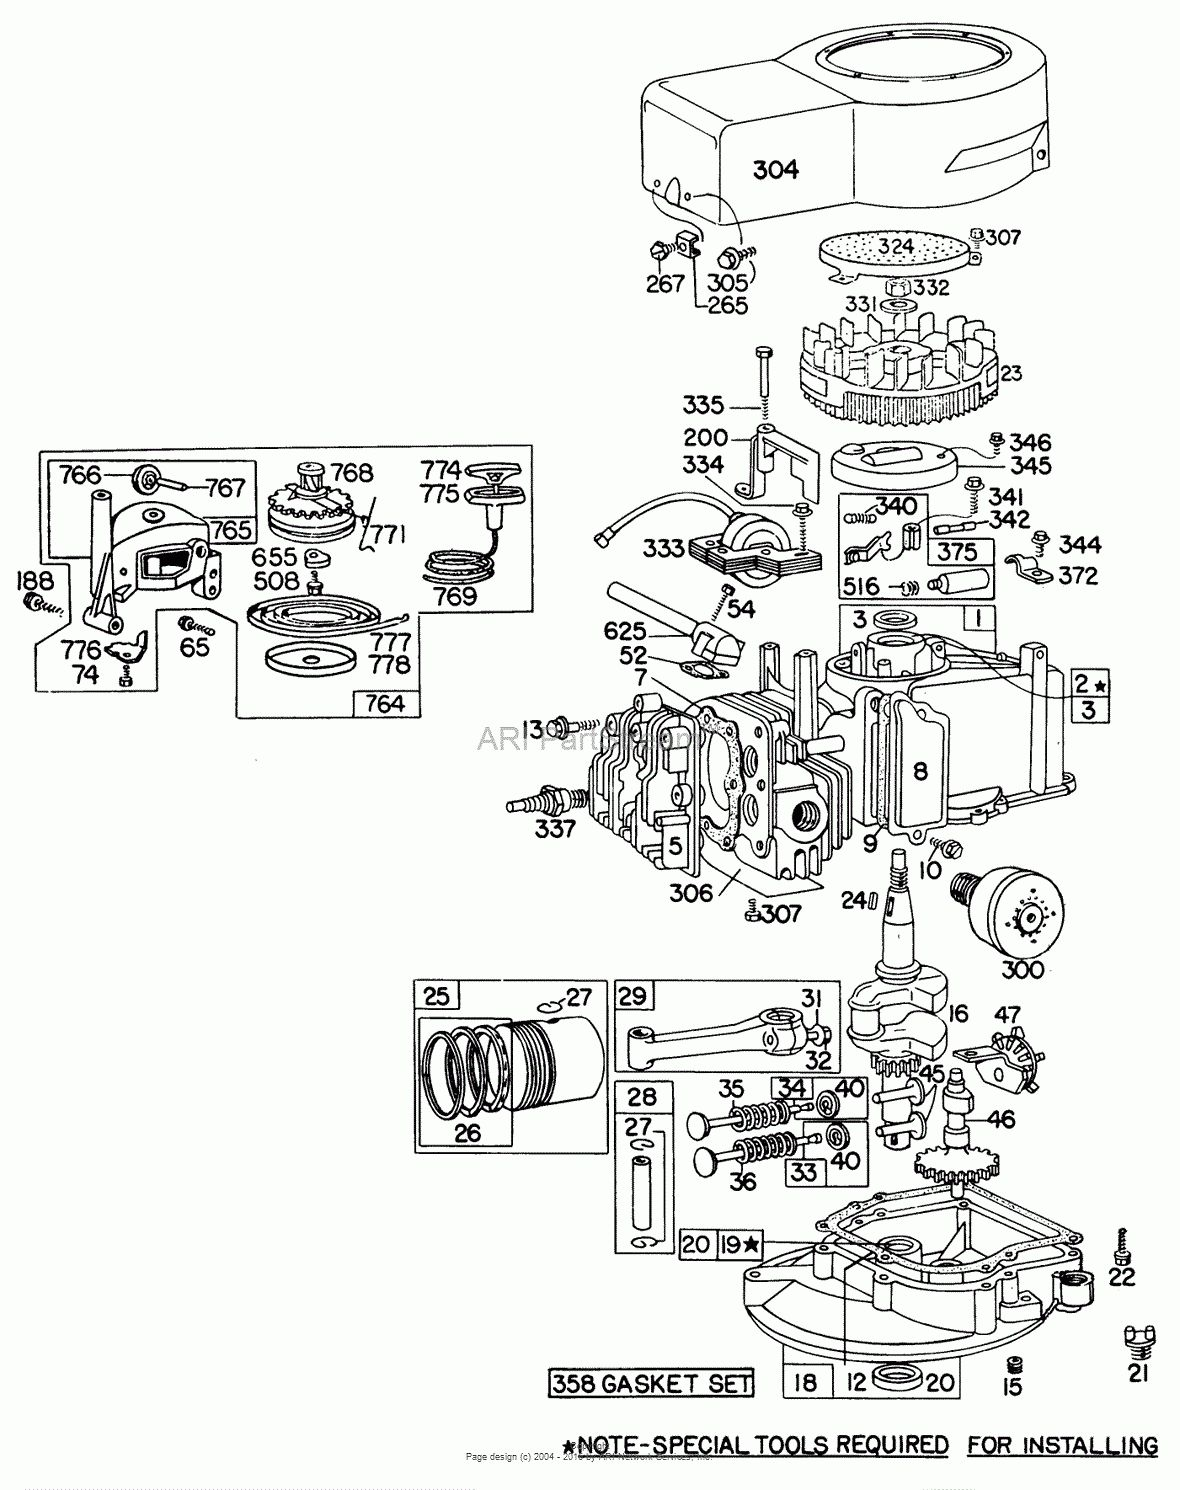 hight resolution of diagram of briggs and stratton lawn mower engine wiring diagram blogbriggs stratton engine parts diagram briggs